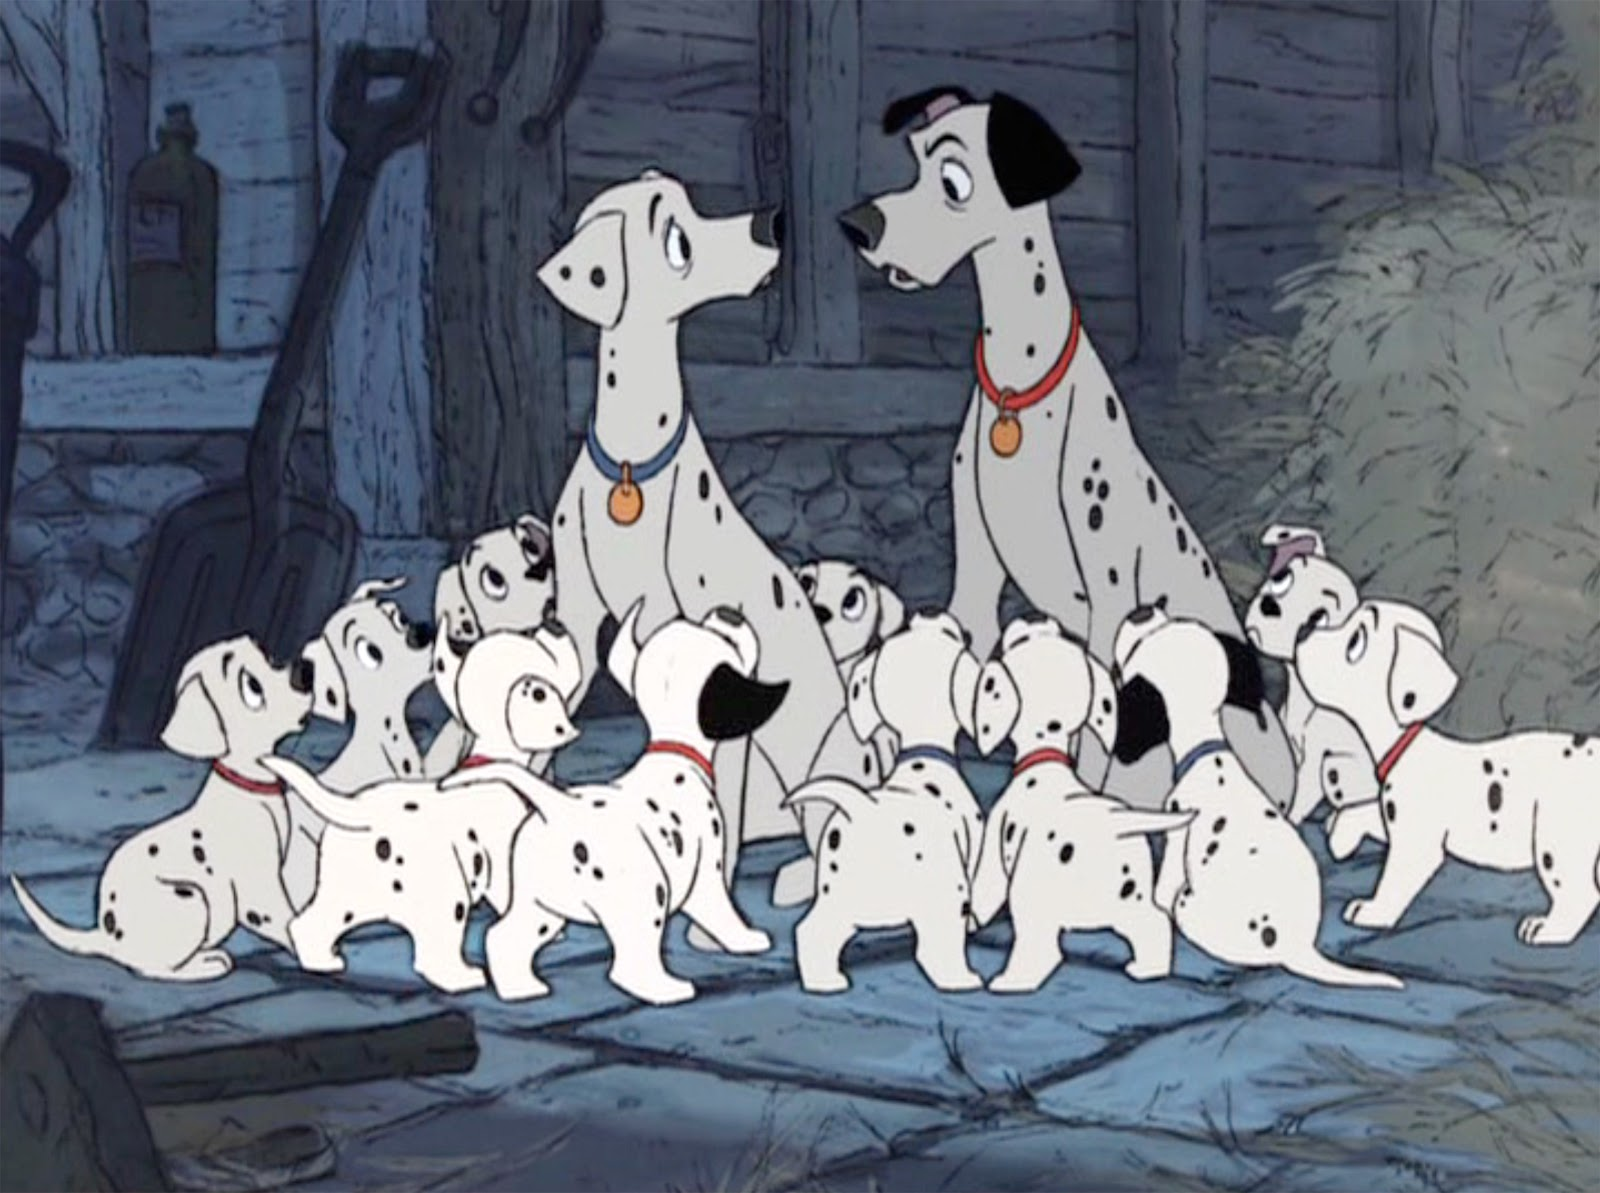 Wool and Wheel 101 Dalmatians 1961